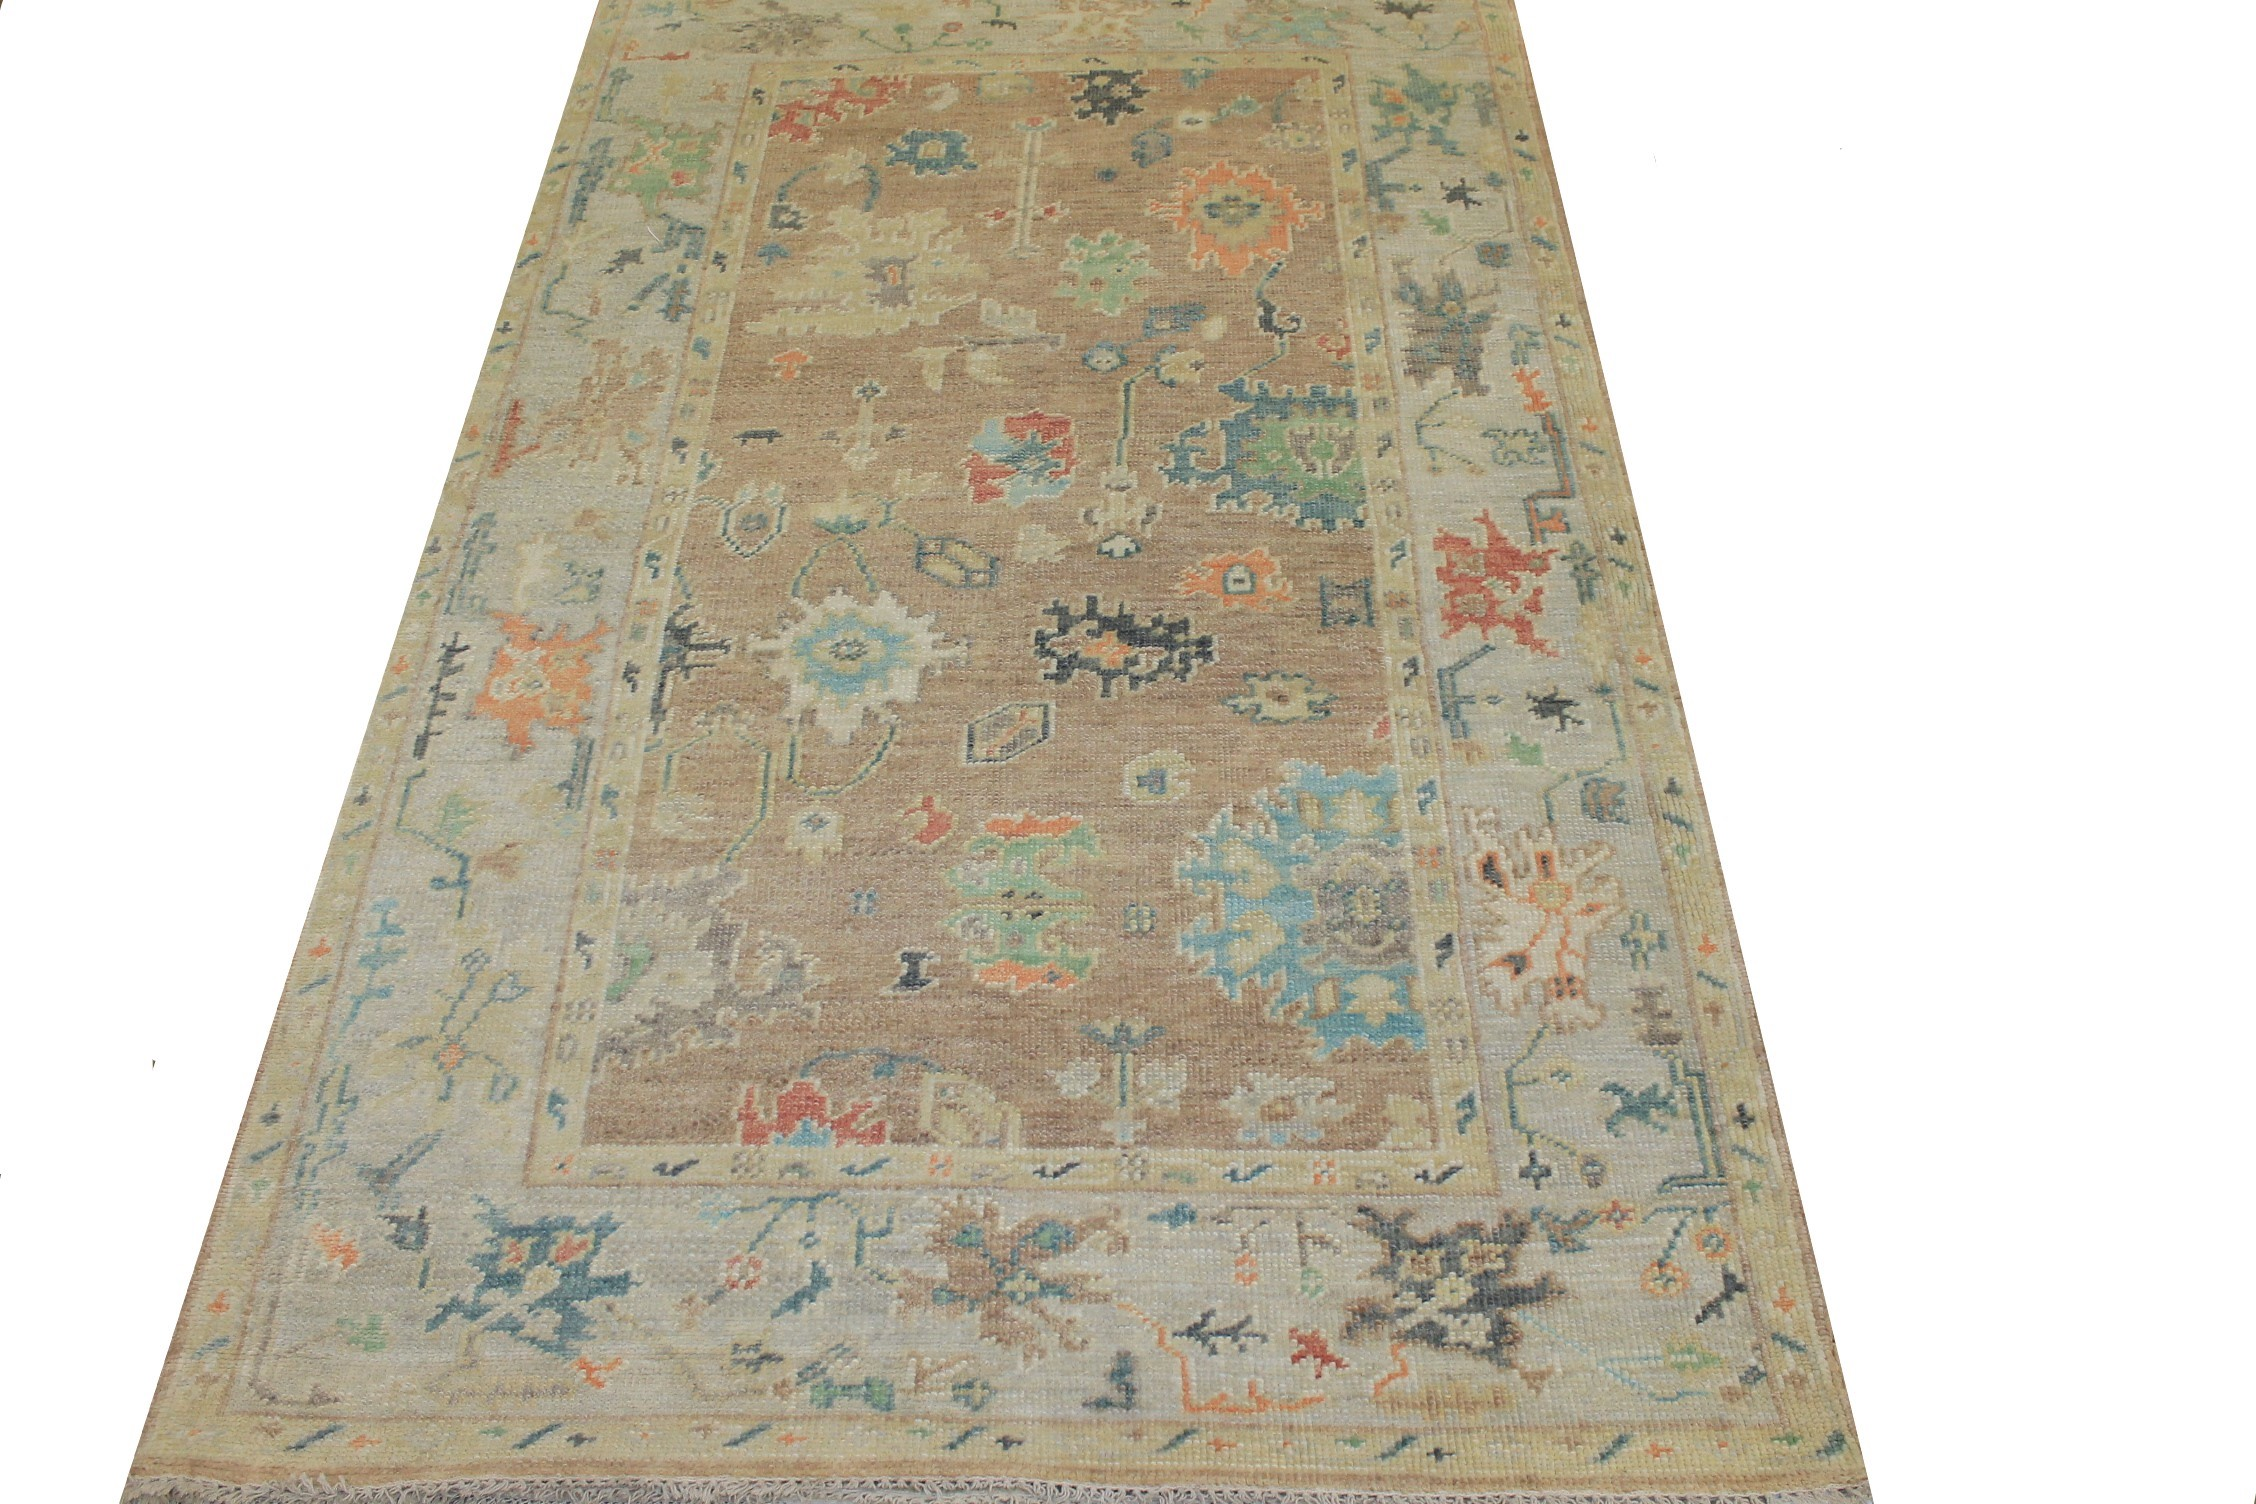 6x9 Oushak Hand Knotted Wool Area Rug - MR024296